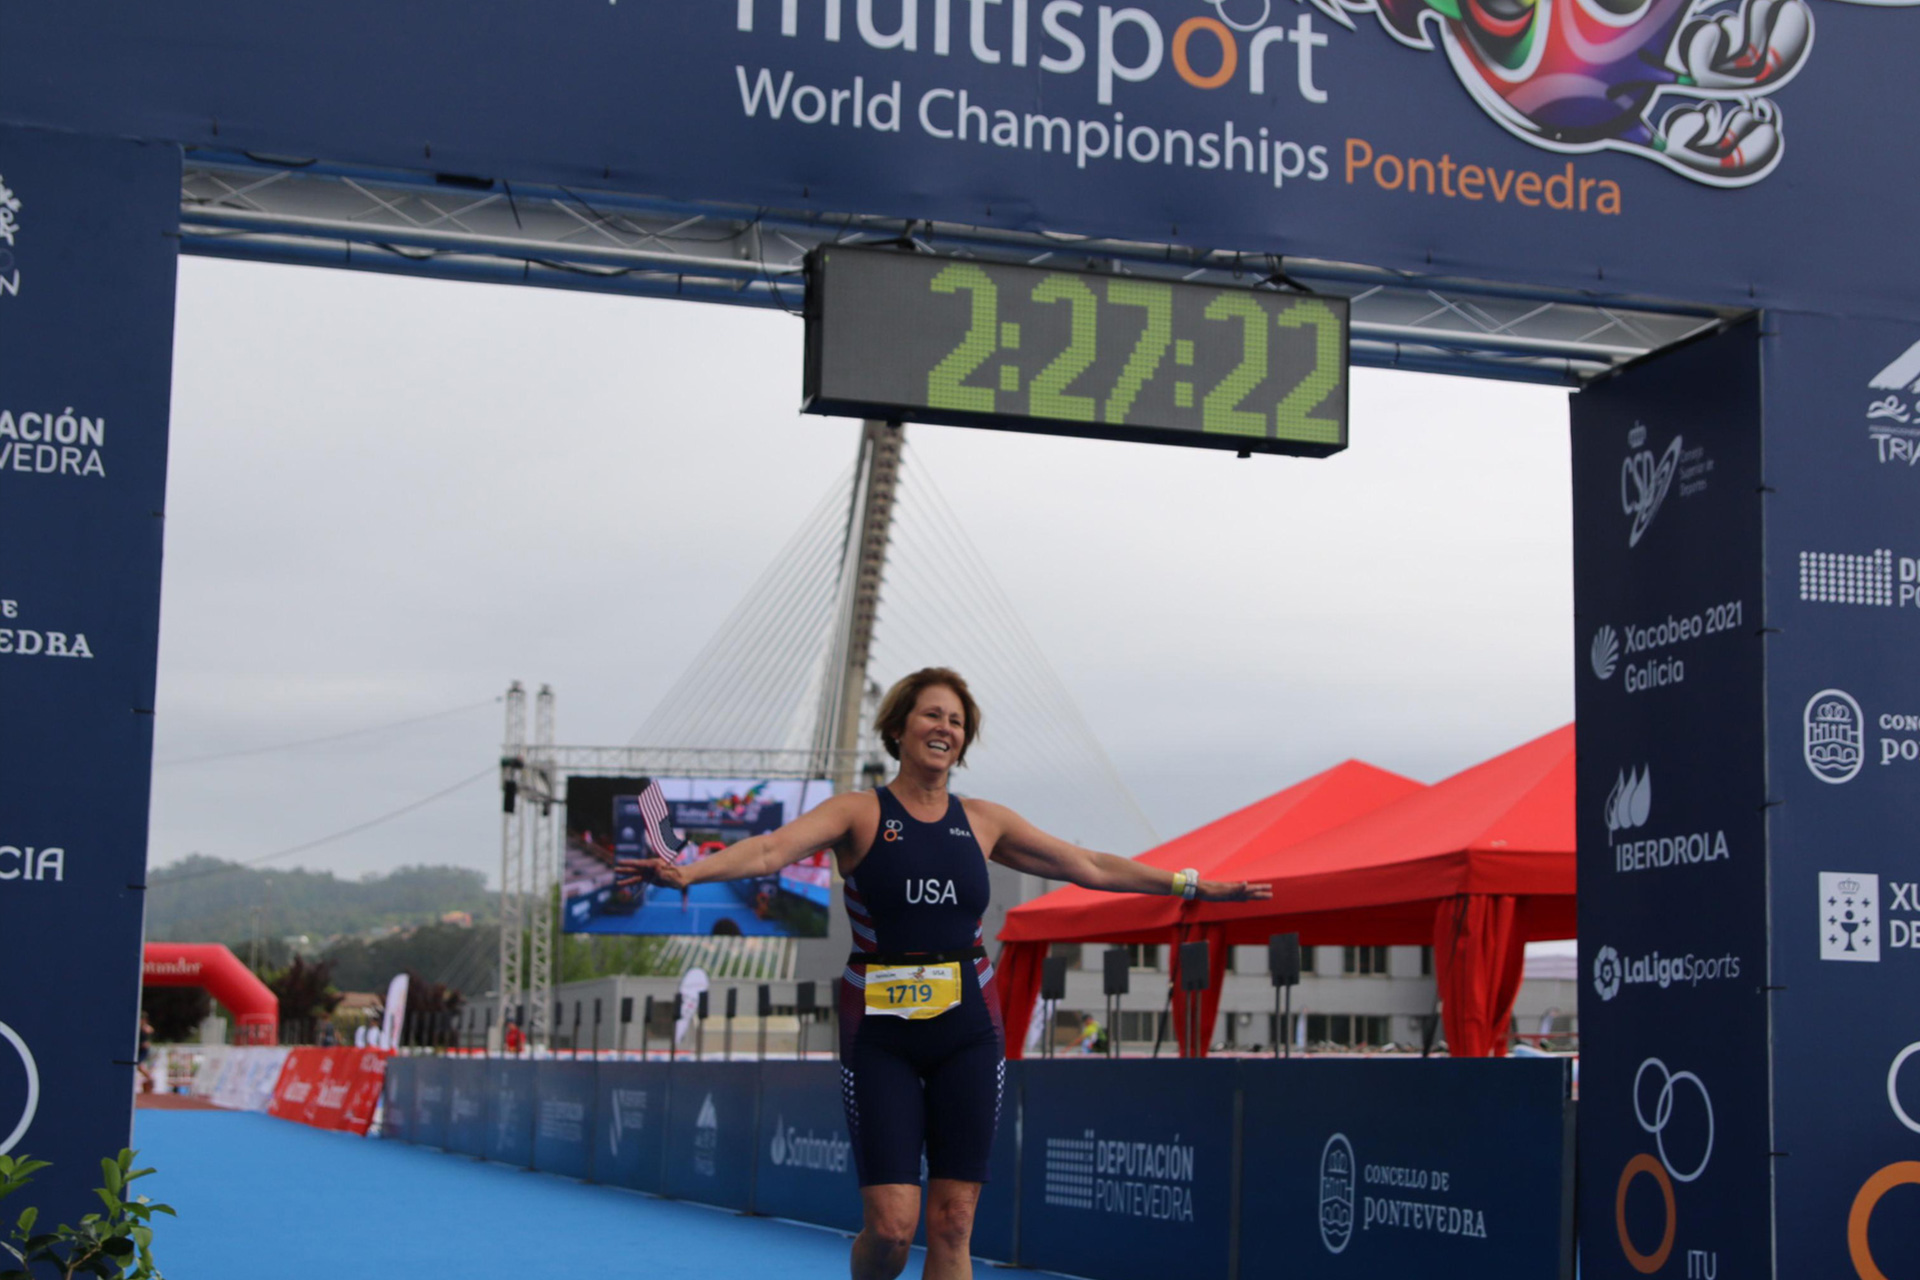 Patty smiles triumphantly as she crosses the finish line at the ITU World Championships in Pontevedra, Spain.